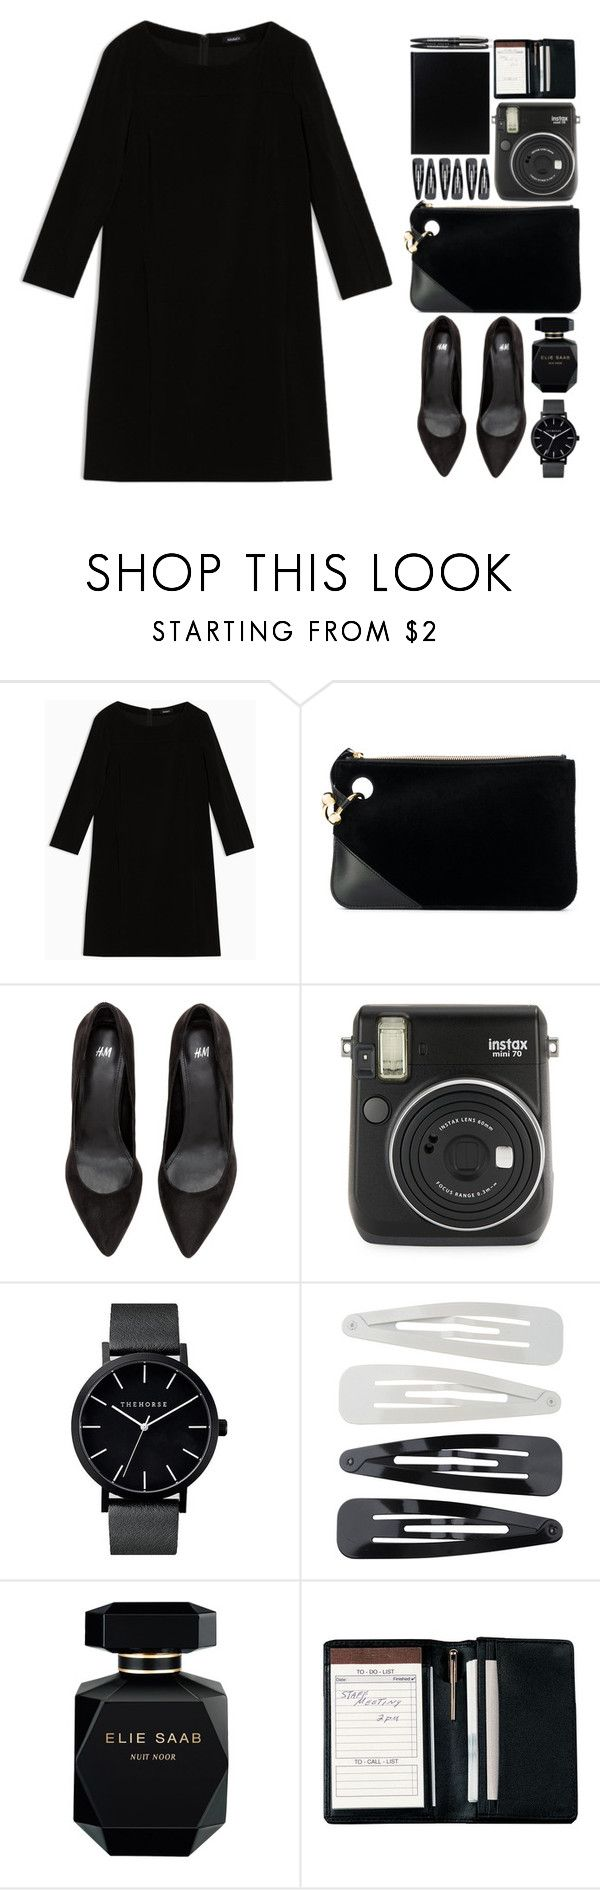 """""""Mission Monochrome: All-Black Outfit"""" by lisannes1 ❤ liked on Polyvore featuring Max&Co., J.W. Anderson, Fuji, Forever 21, Elie Saab, Royce Leather, polyvorecontest, allblackoutfit and polyvorefashion"""